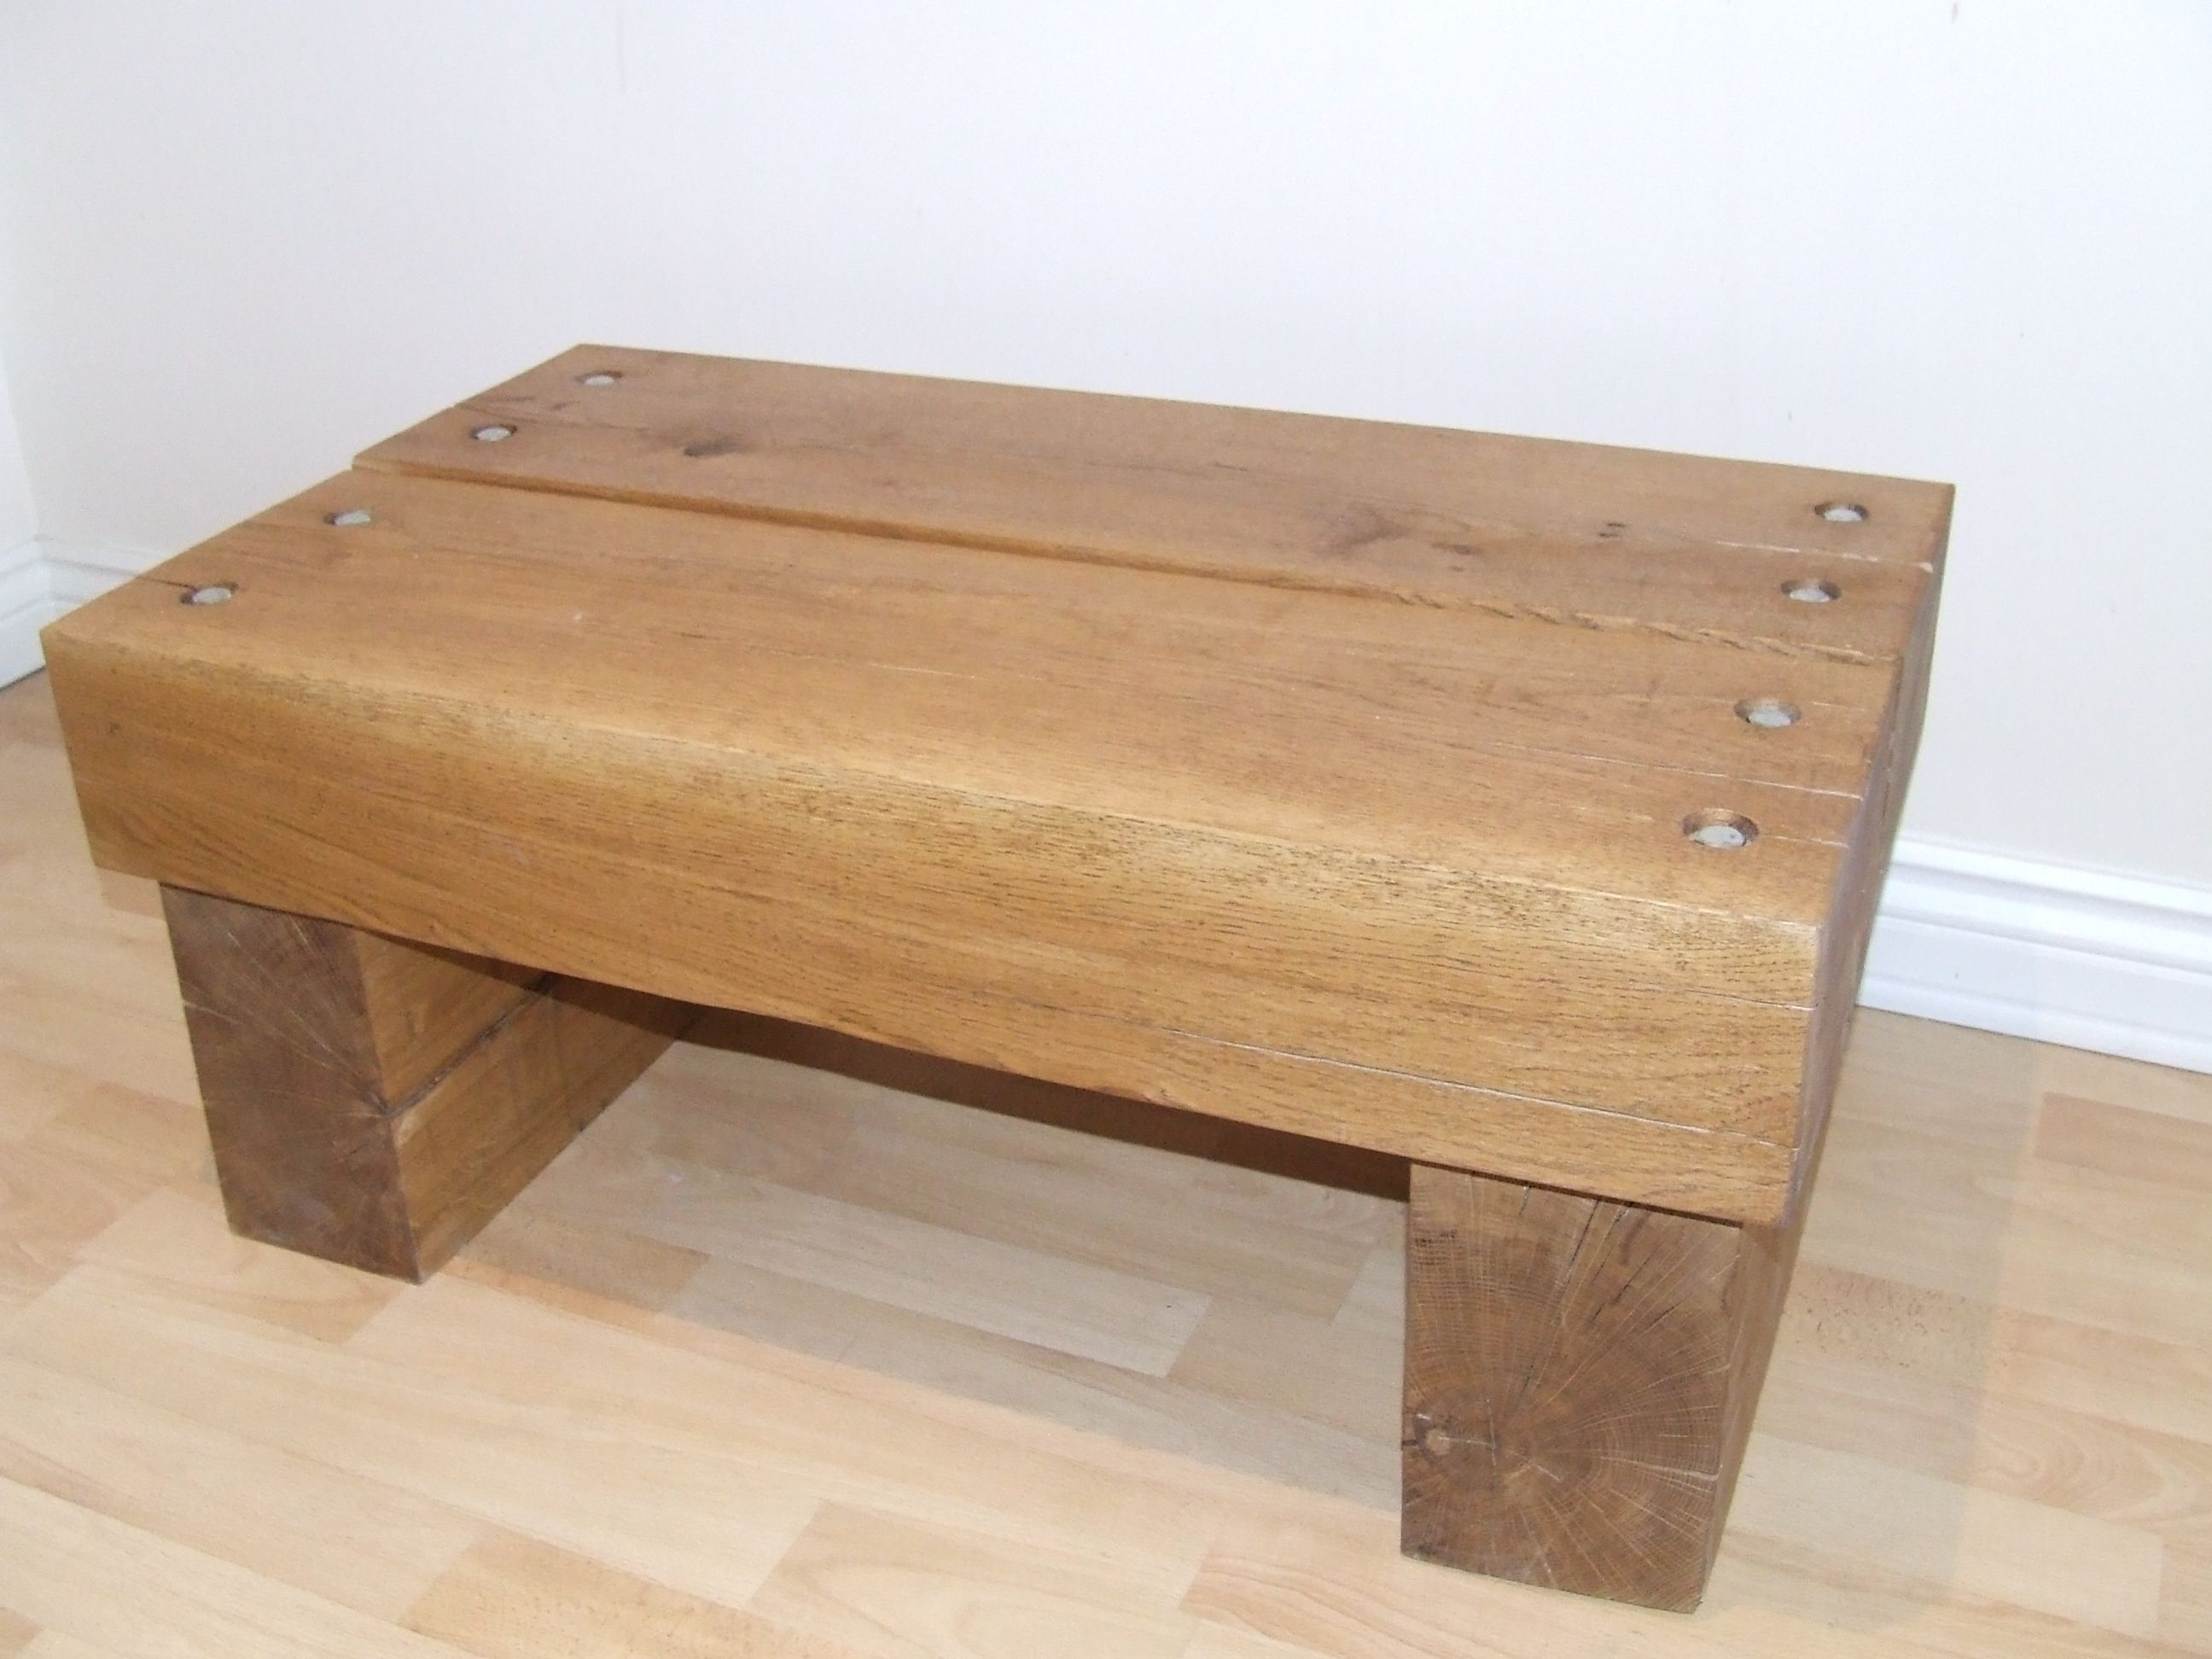 Oak sleeper coffee table with a sleek finish oak sleeper tables oak sleeper coffee table with a sleek finish geotapseo Gallery